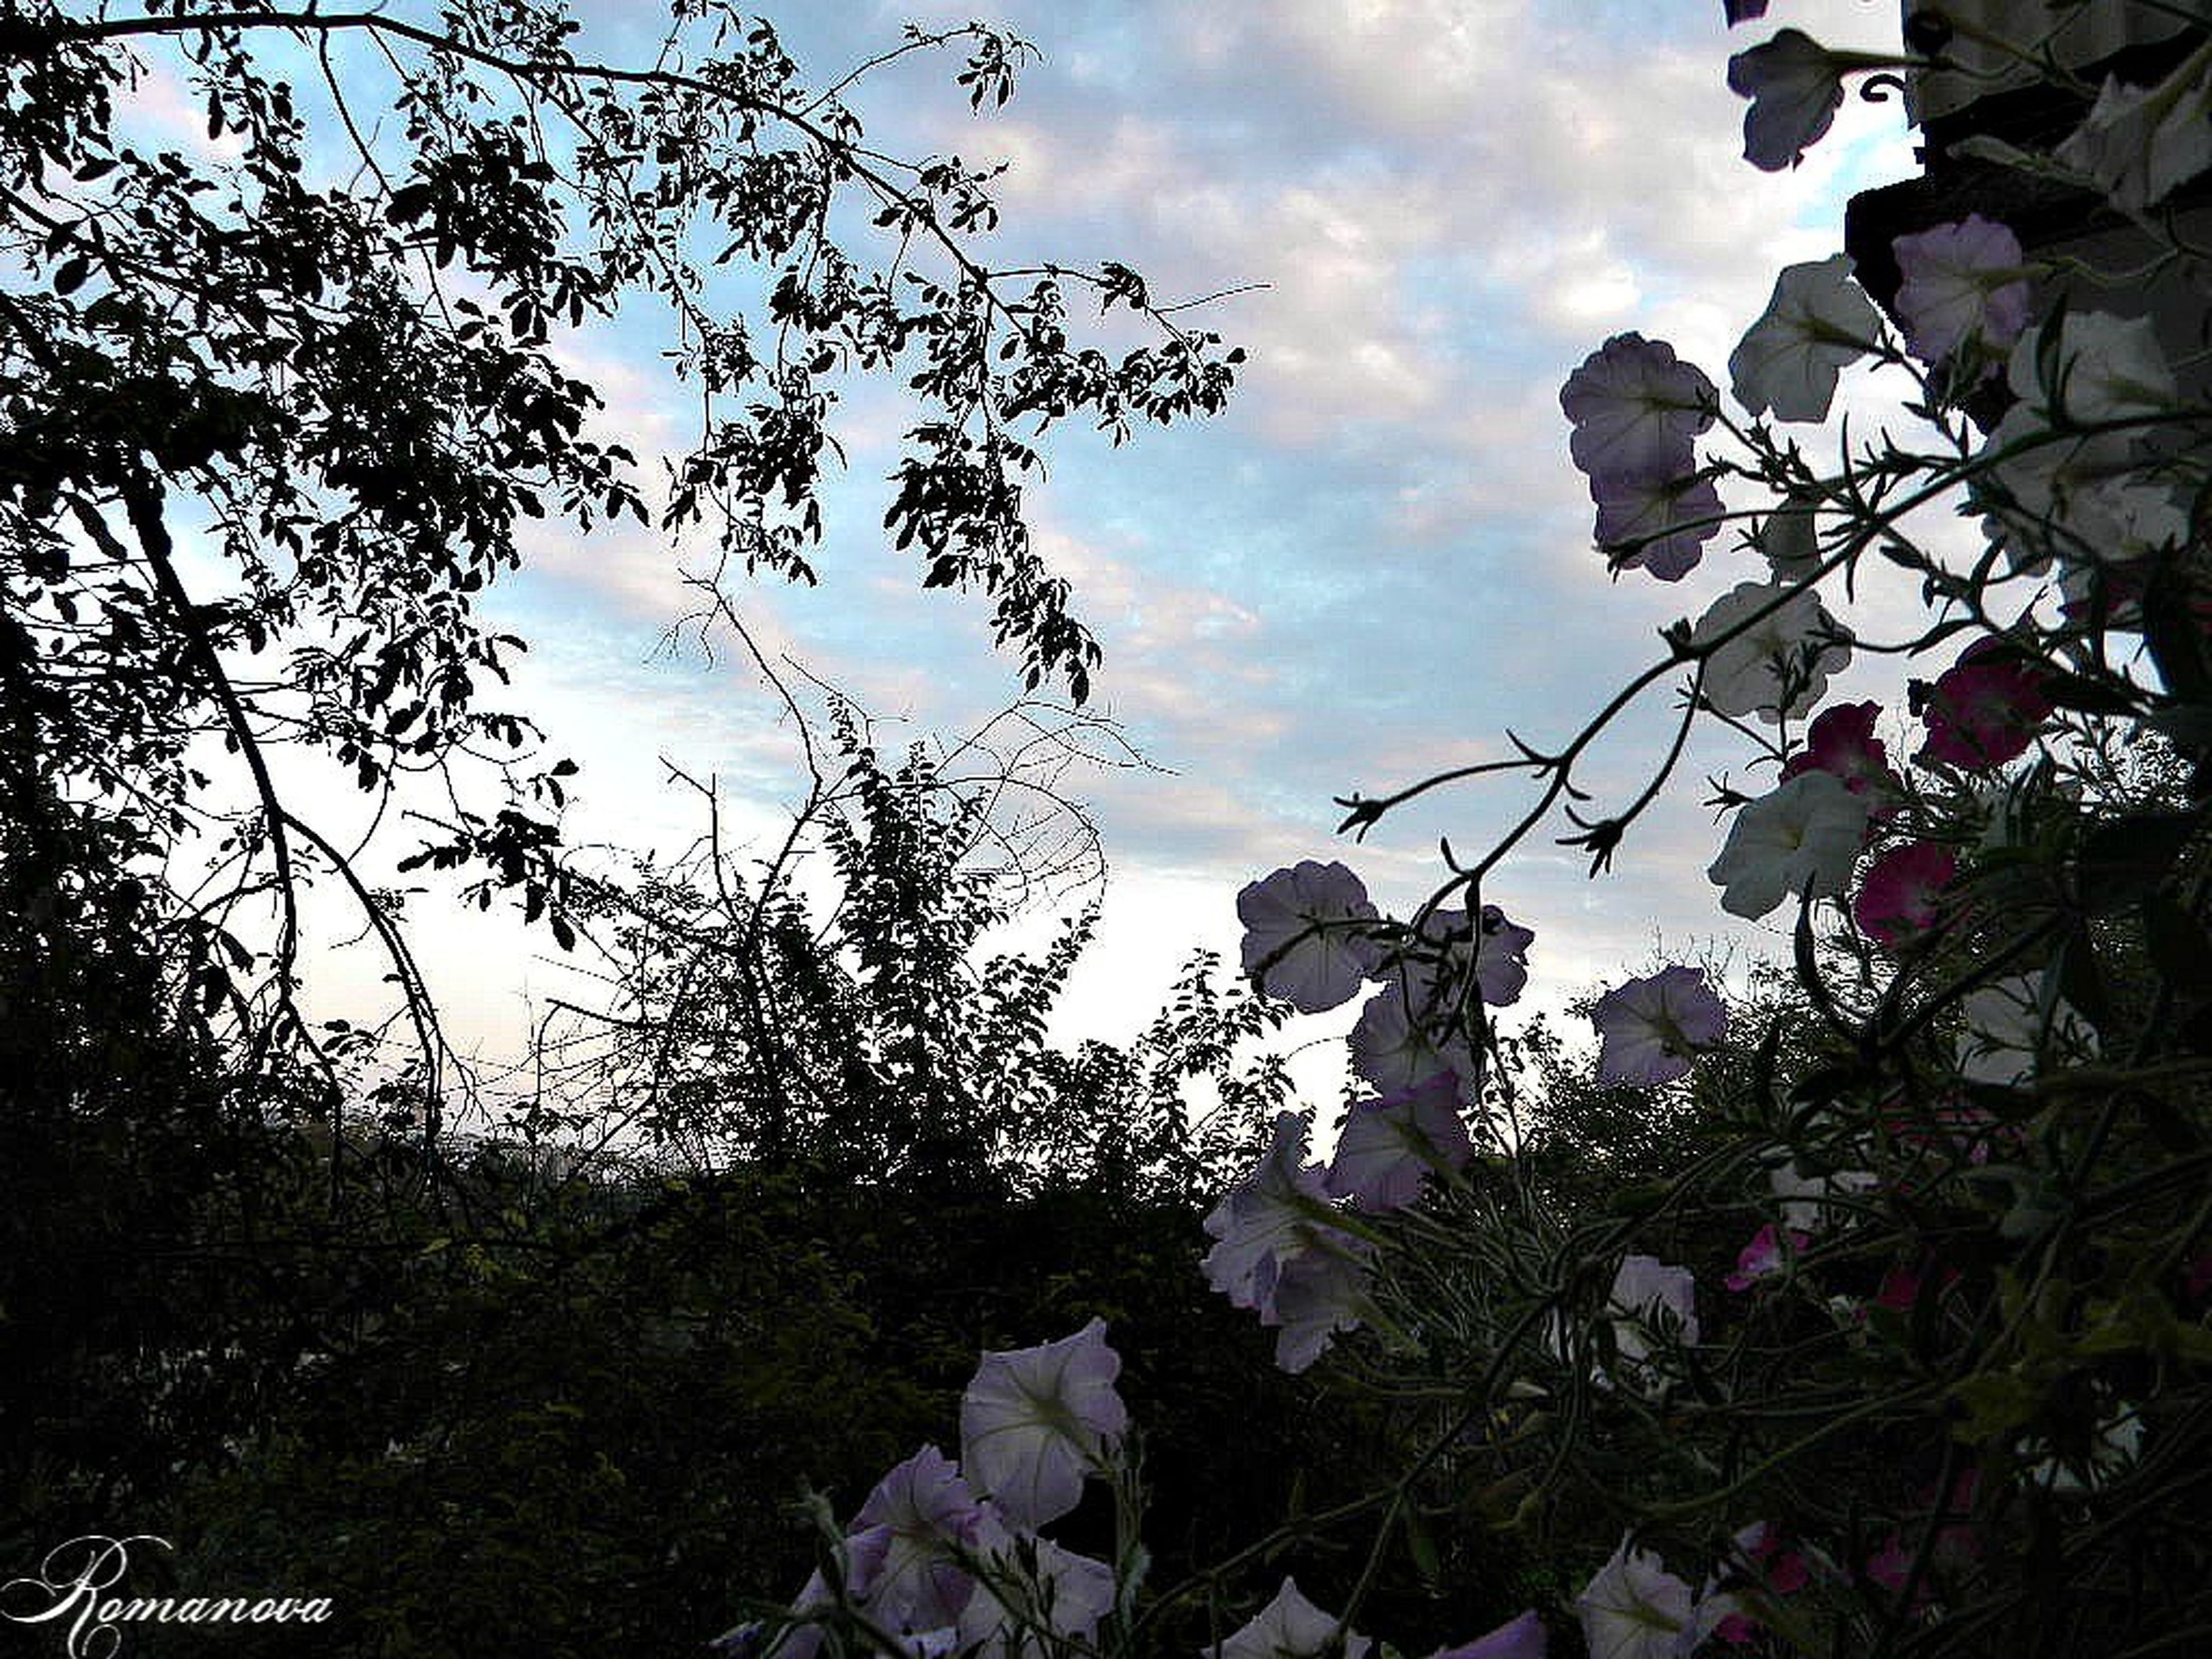 sky, tree, branch, cloud - sky, low angle view, growth, nature, cloud, tranquility, beauty in nature, leaf, cloudy, tranquil scene, scenics, outdoors, day, bare tree, no people, plant, flower